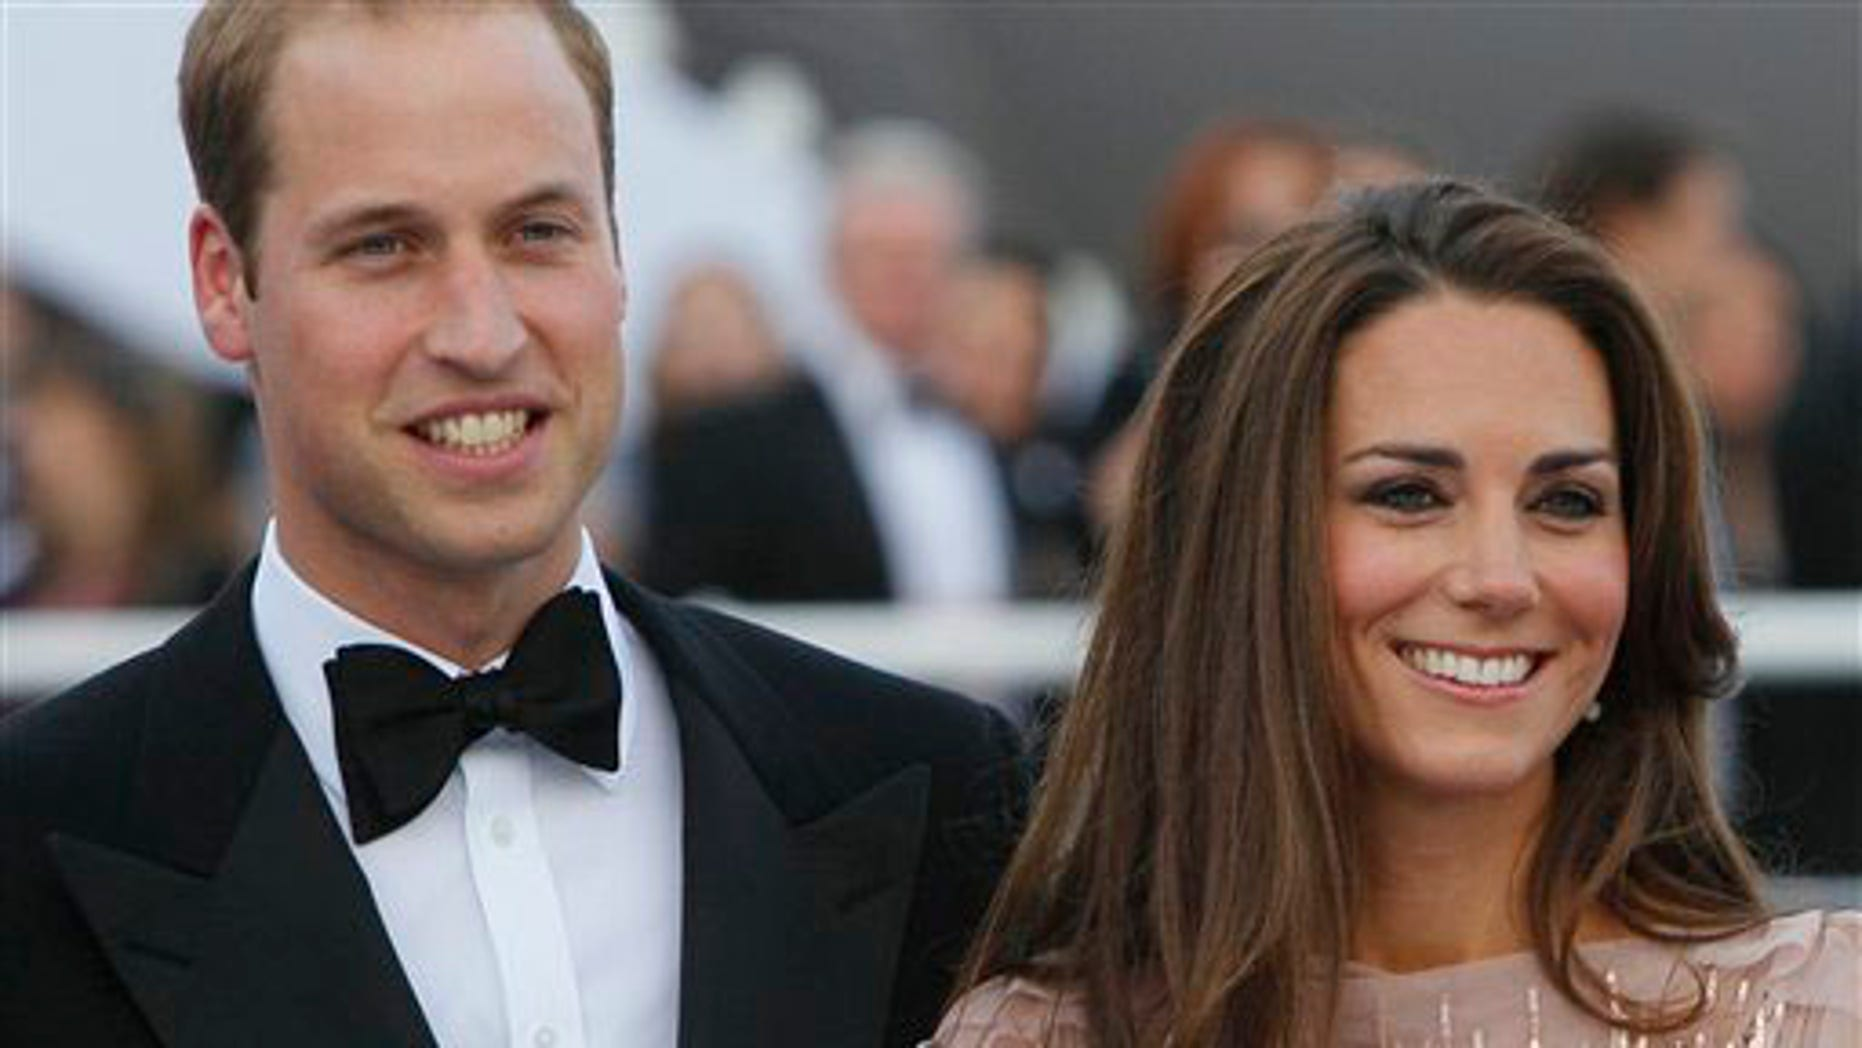 Prince William and his wife Kate, Duchess of Cambridge arrive at a charity event for Absolute Return for Kids, ARK, in central London, Thursday, June, 9, 2011. The charity event is the first official engagement for the couple since they were married on April 29.(AP Photo/Alastair Grant)